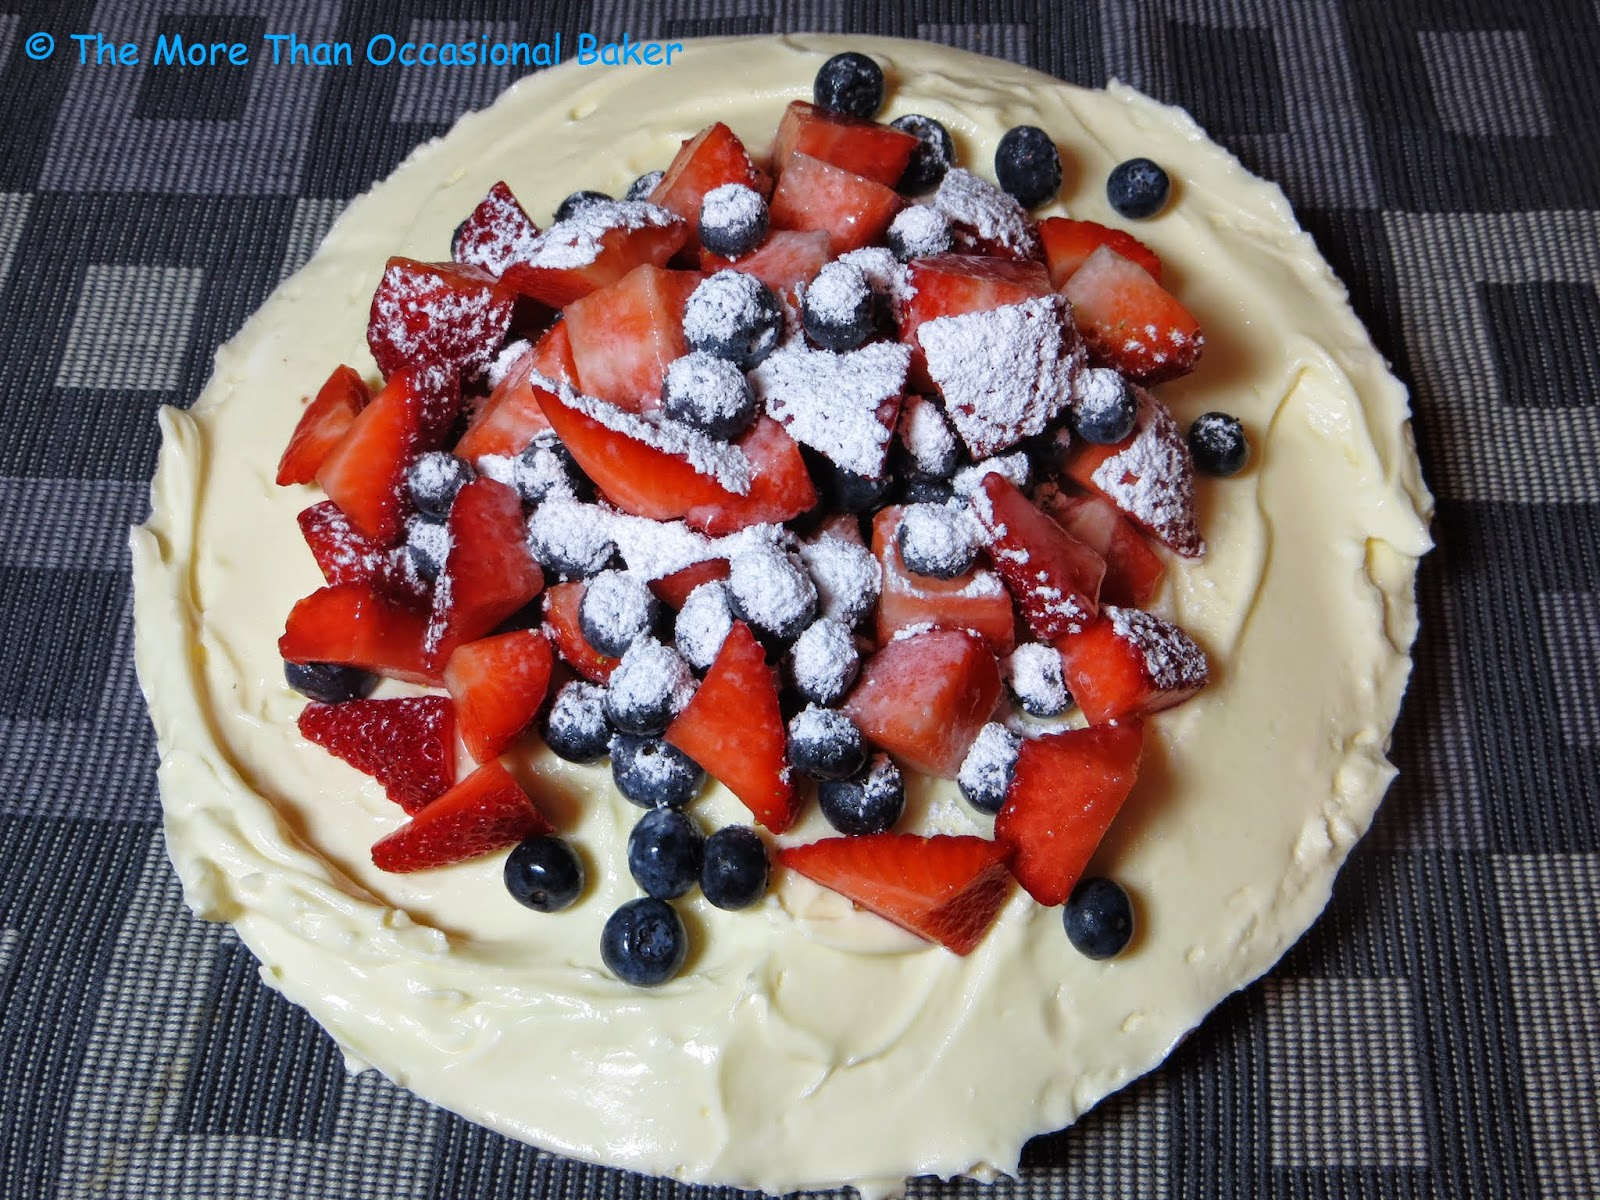 The more than occasional baker: Mary Berry Lemon Cheesecake